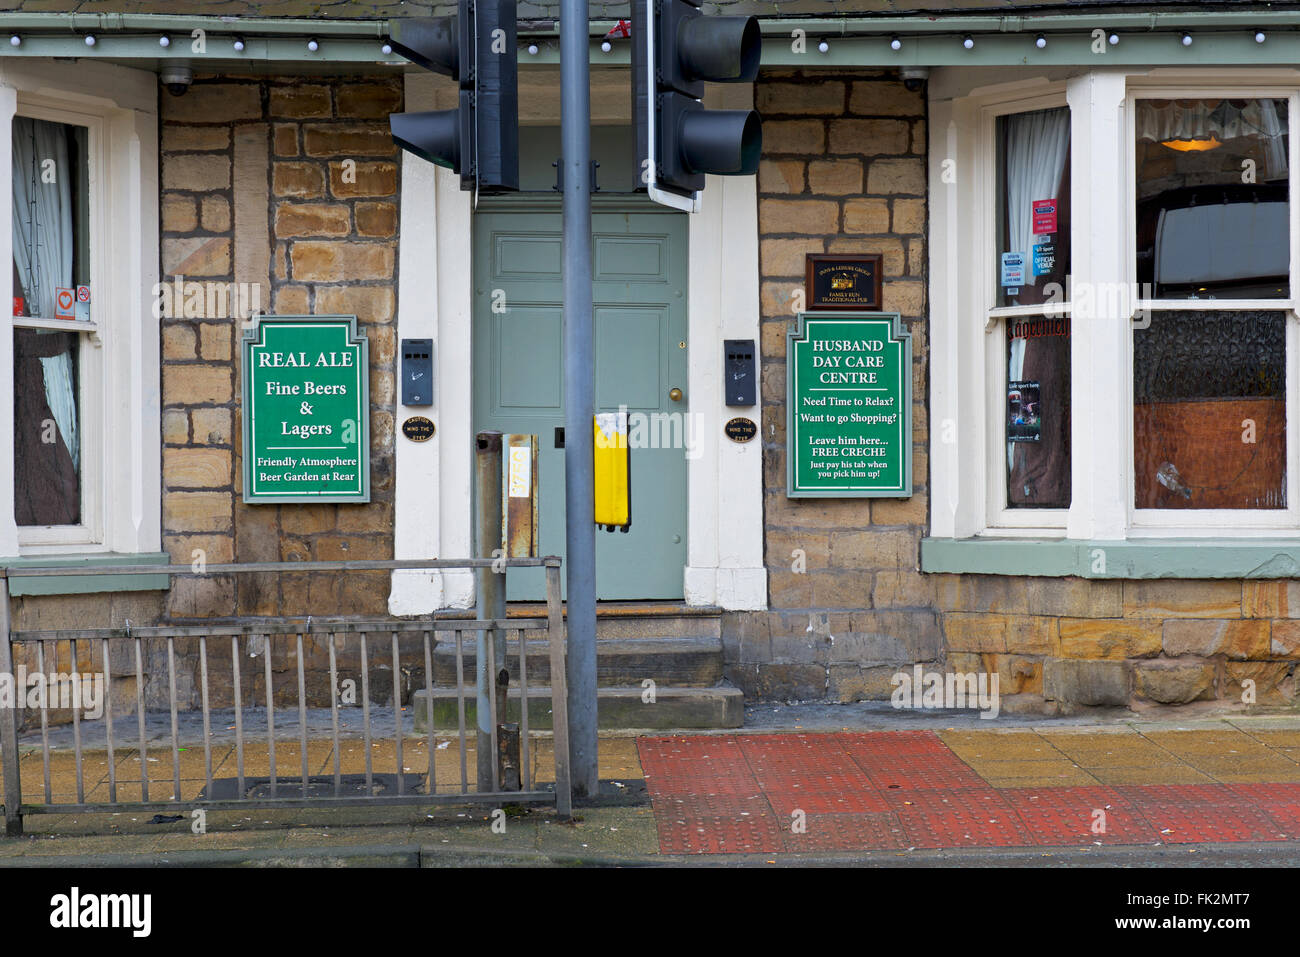 Sign on pub - day care for husbands - England UK - Stock Image